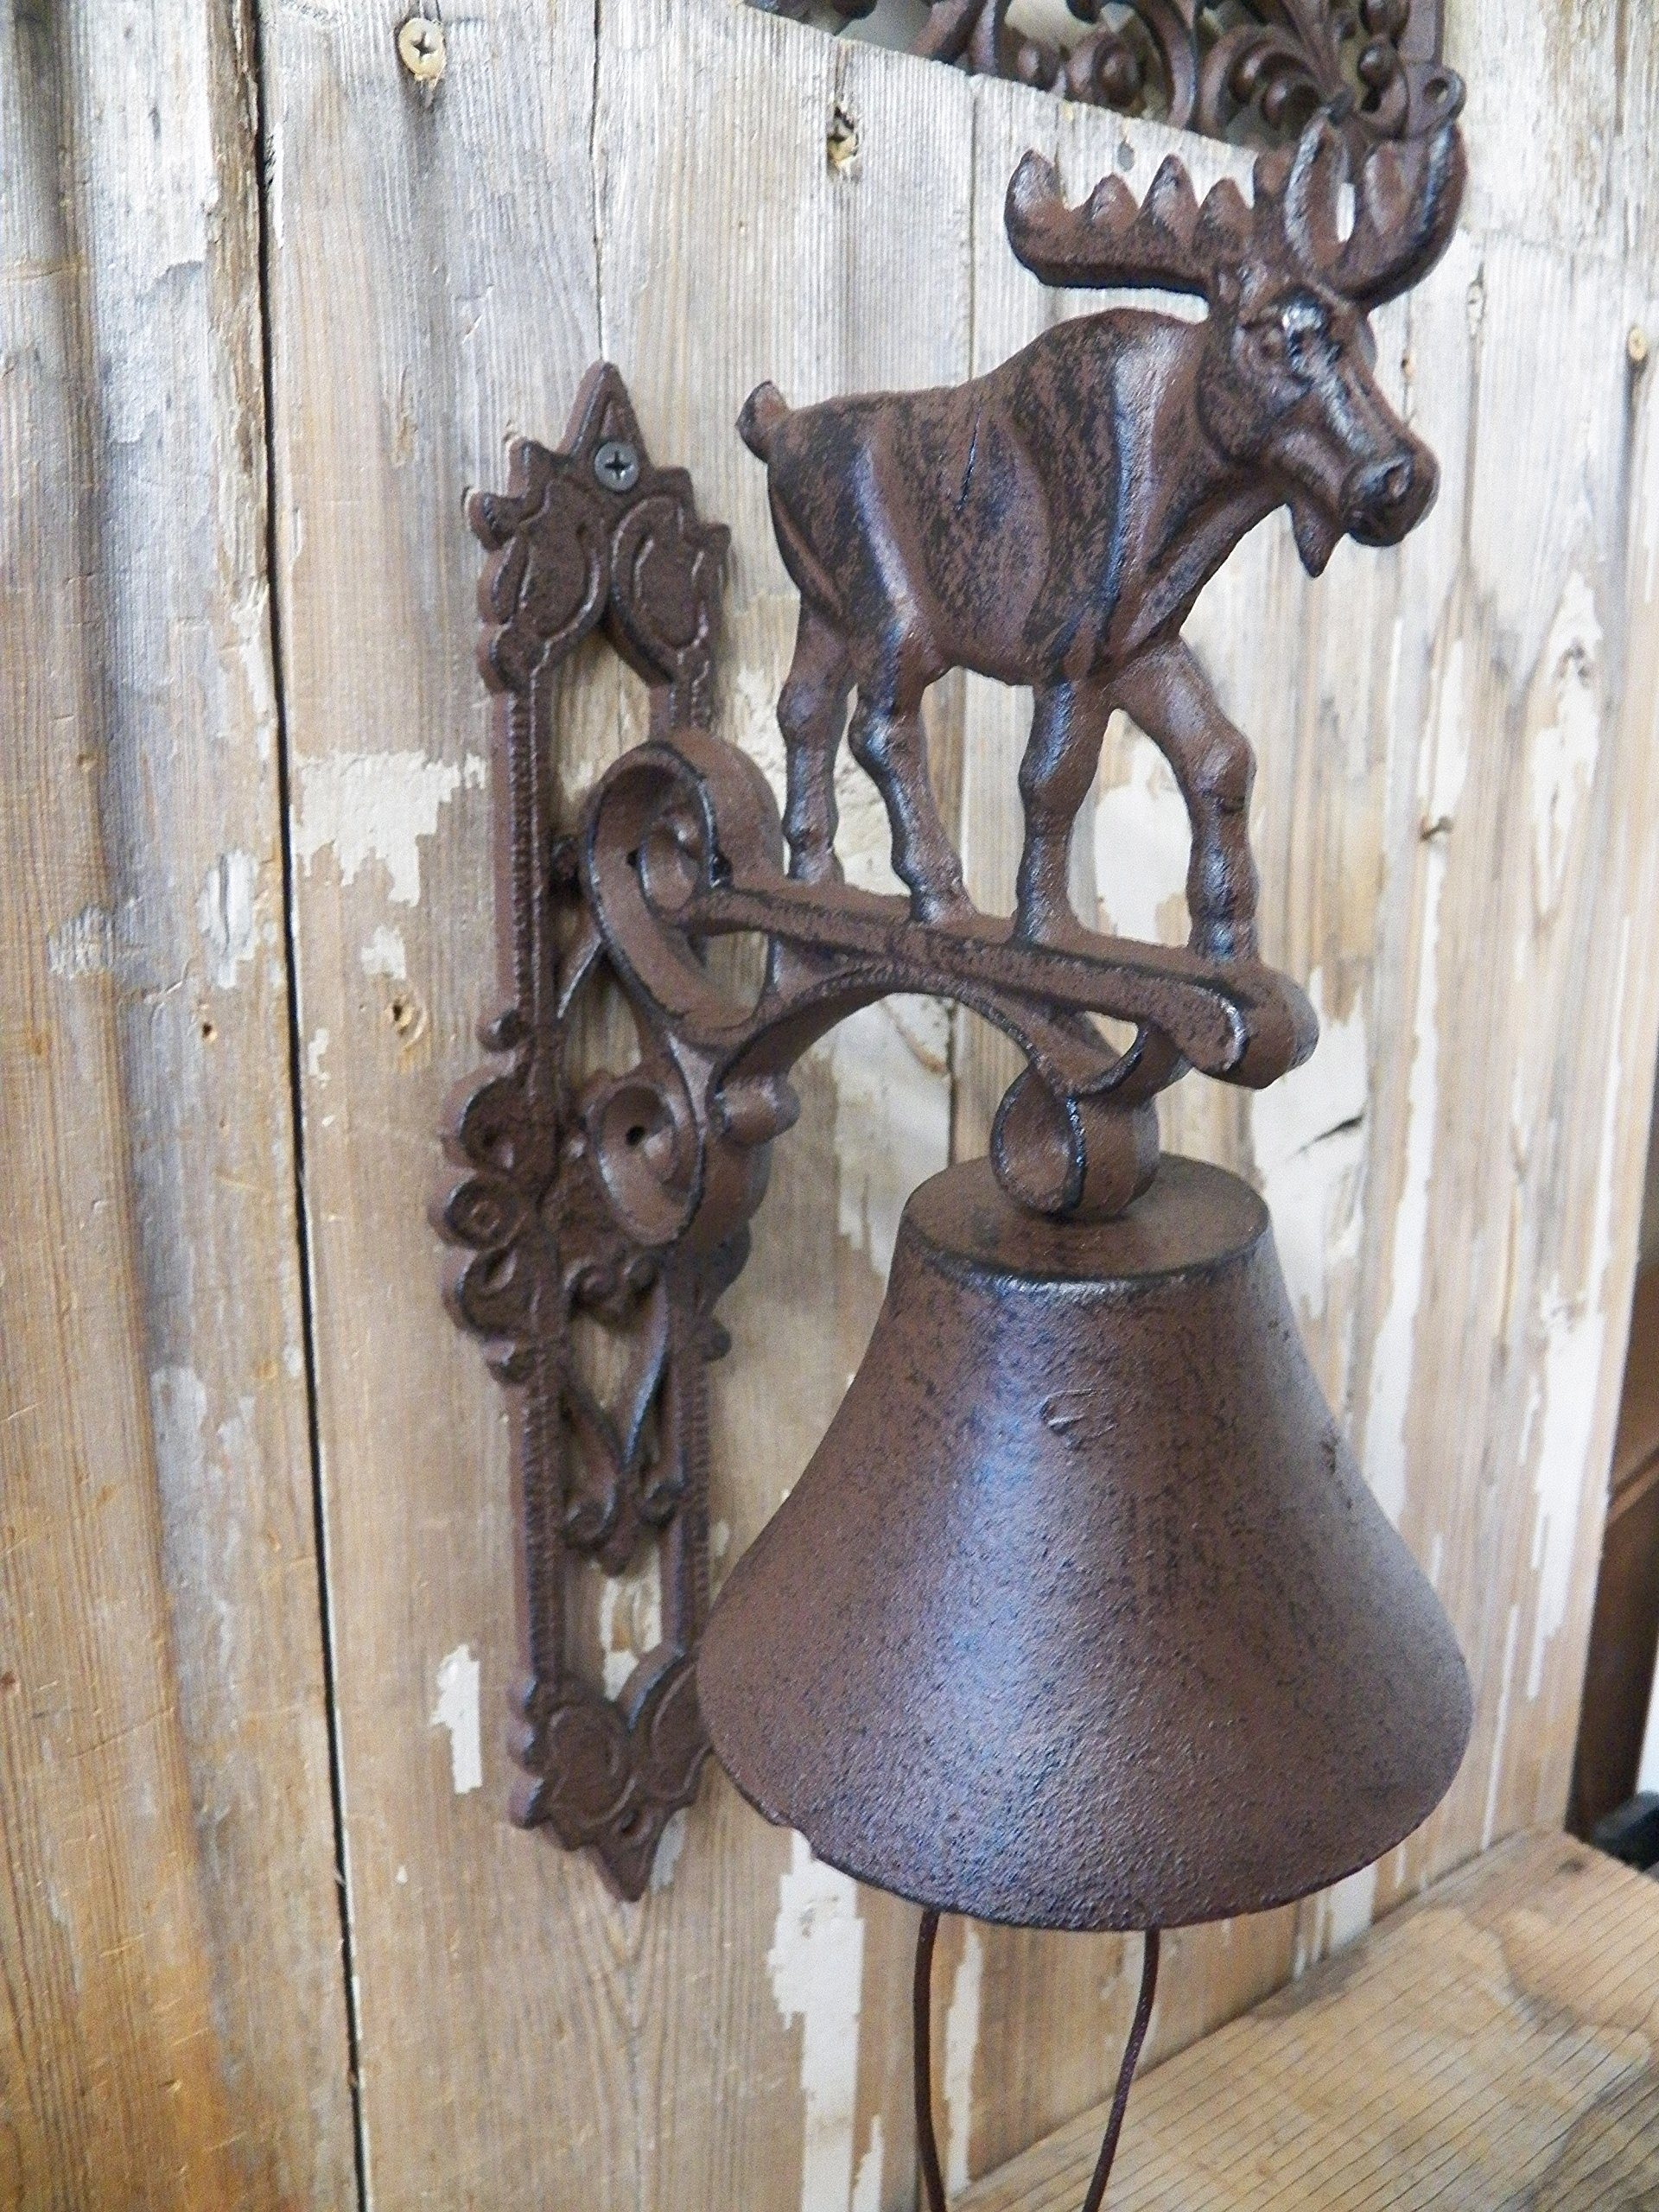 Moose Motif Dinner Bell Antique-Style Cast Iron Deck Windchime Wind Chime by BSA